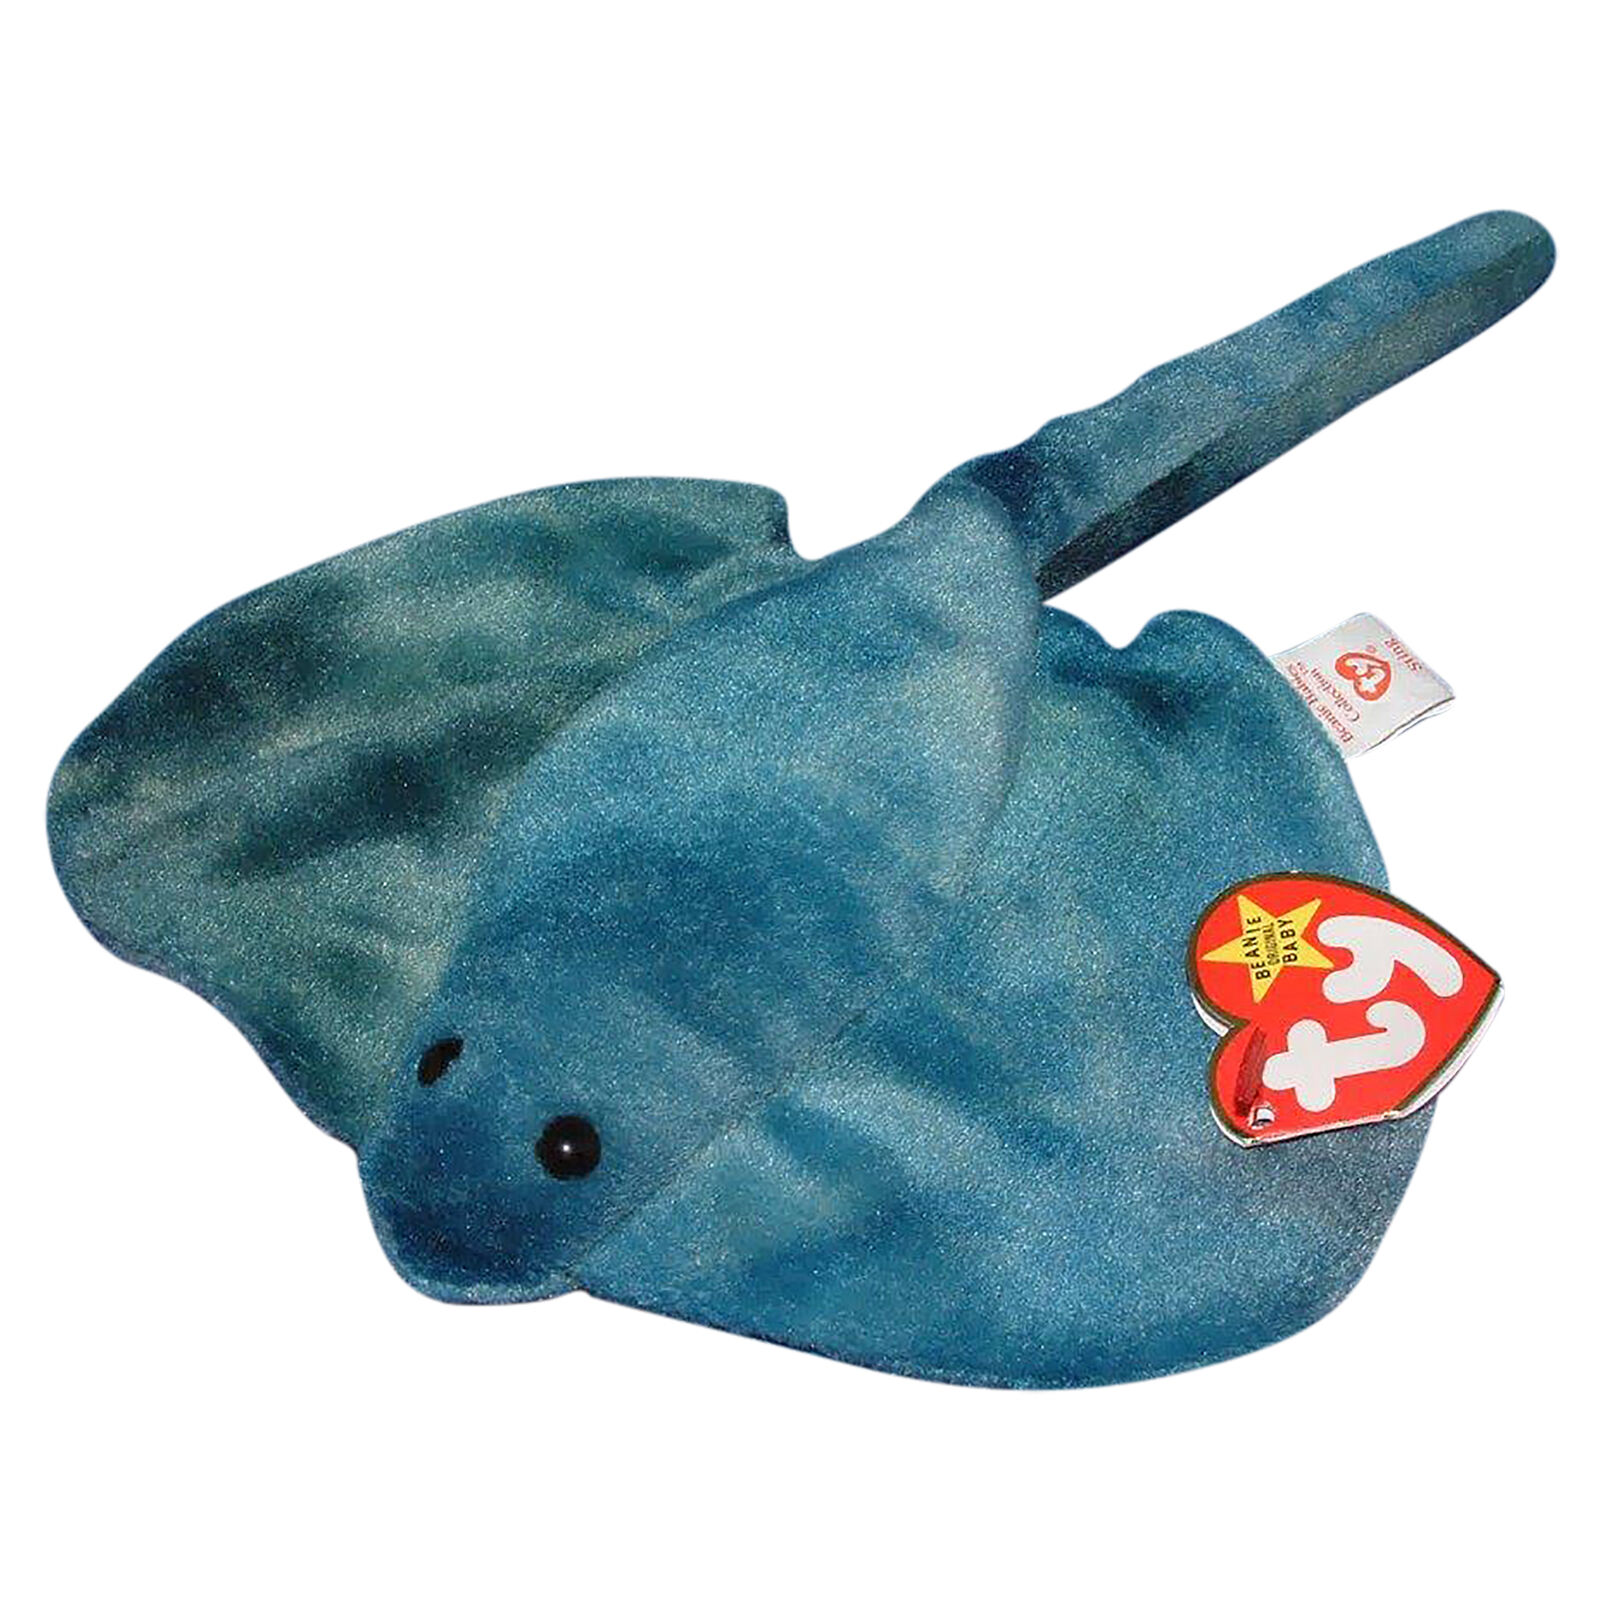 655e7952192 Sting Blue Stingray Ray 3rd Hang 2nd Tush Tag Generation Ty Beanie Baby  Fish for sale online